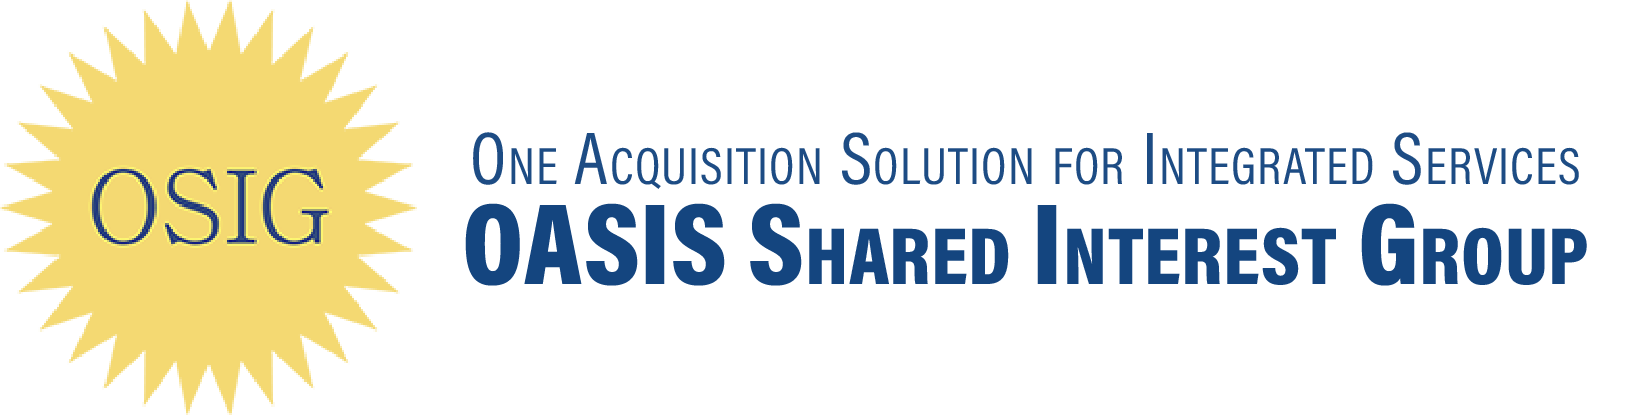 OASIS Shared Interest Group